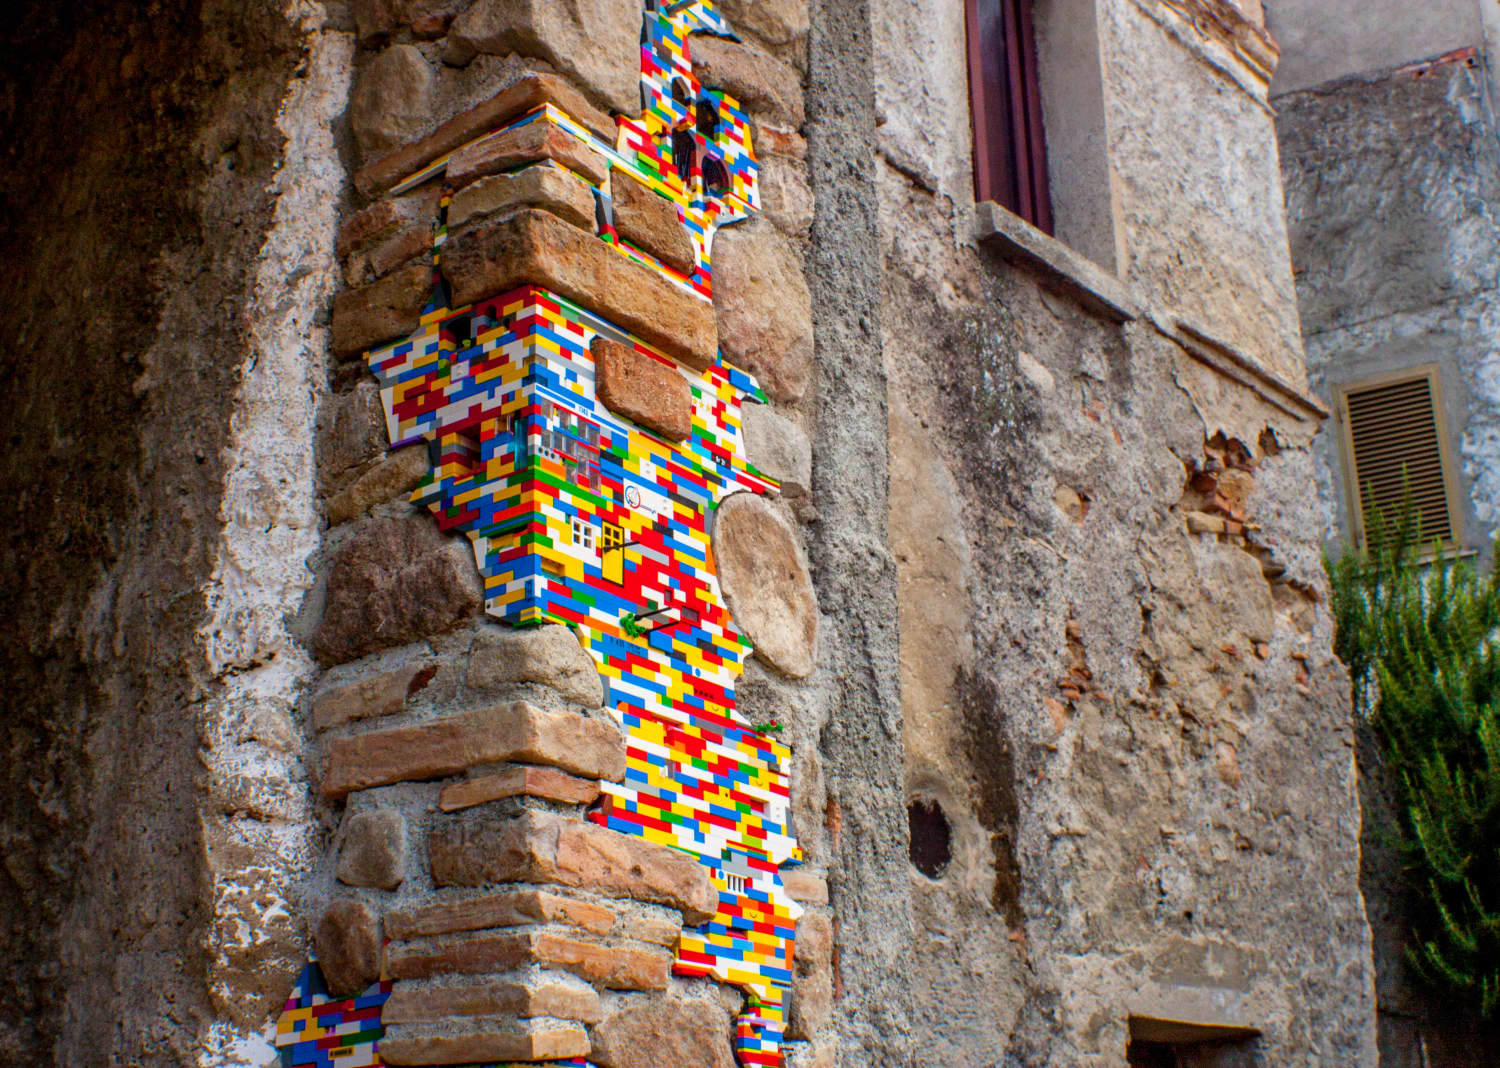 This Artist Uses LEGO to Repair Structures All Over the World